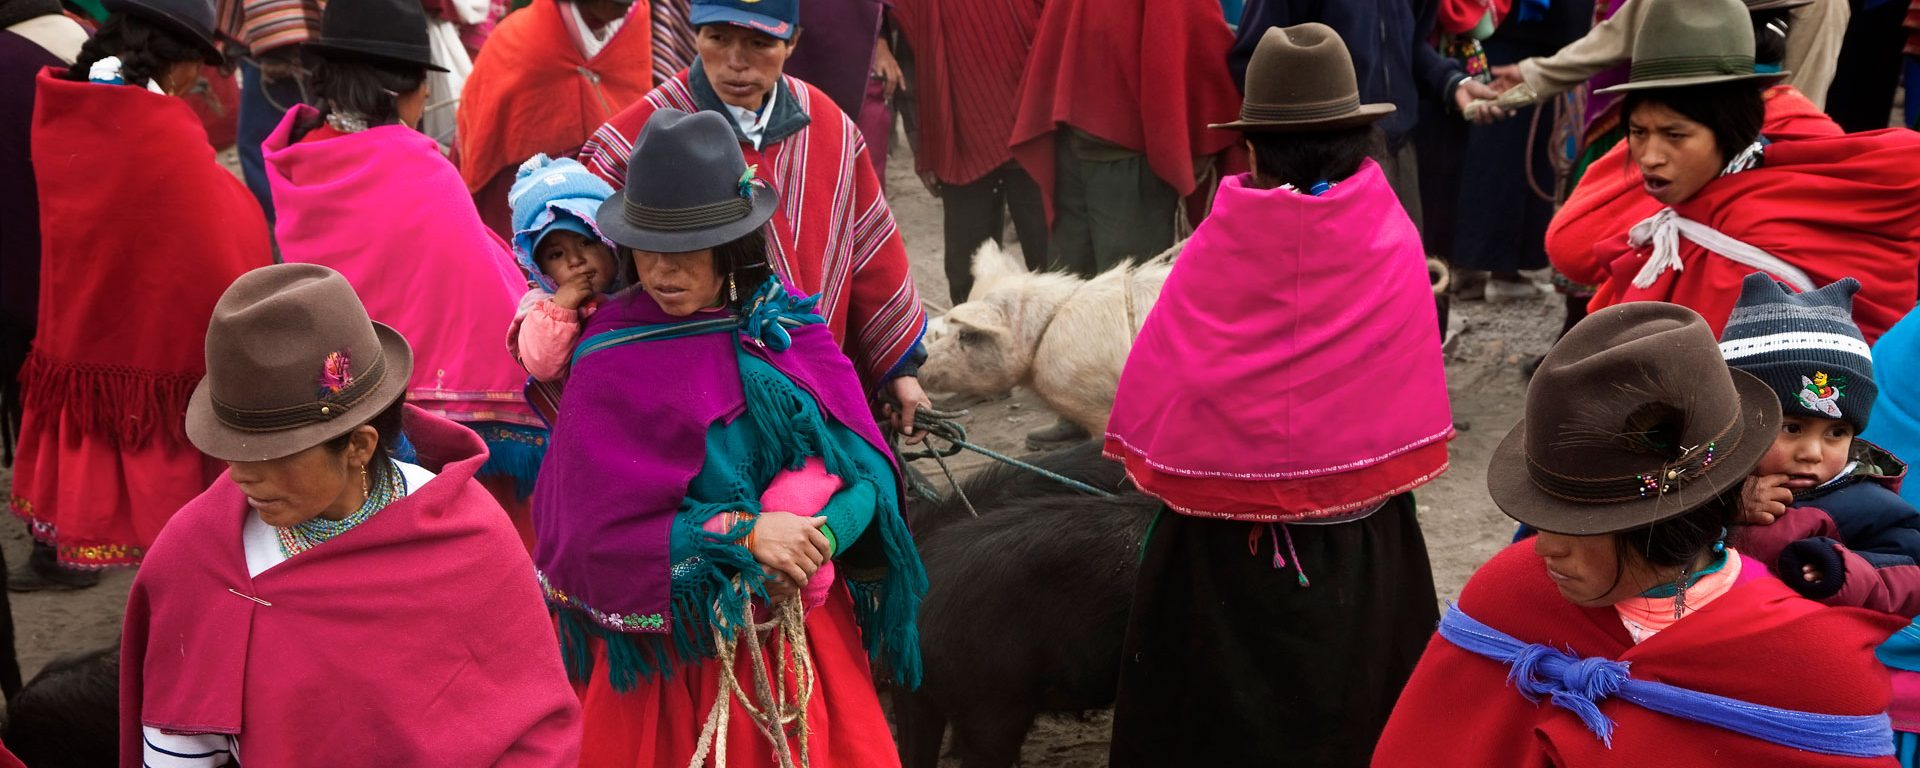 Colorfully dressed Andean women at an animal market in the central highlands of Ecuador